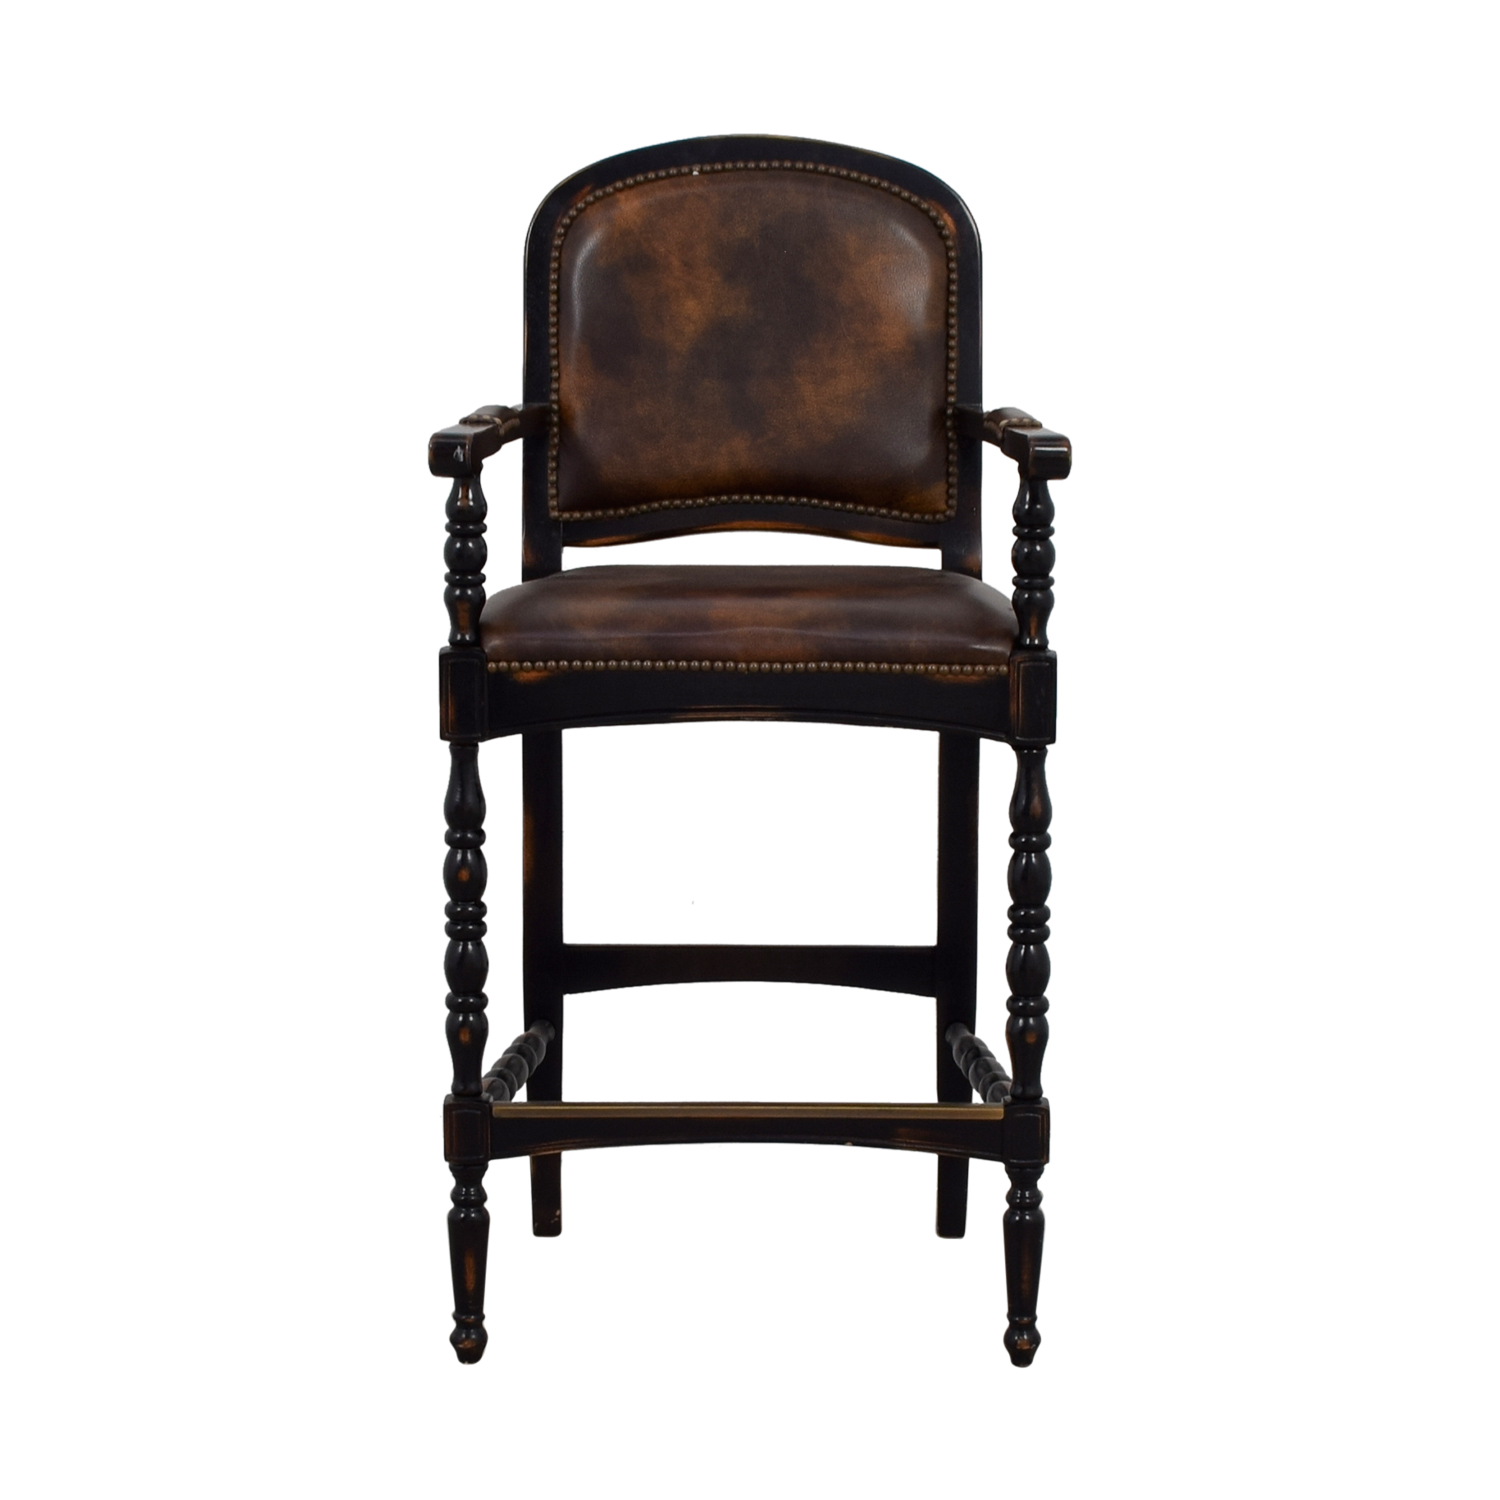 Leather Barstool chair for sale